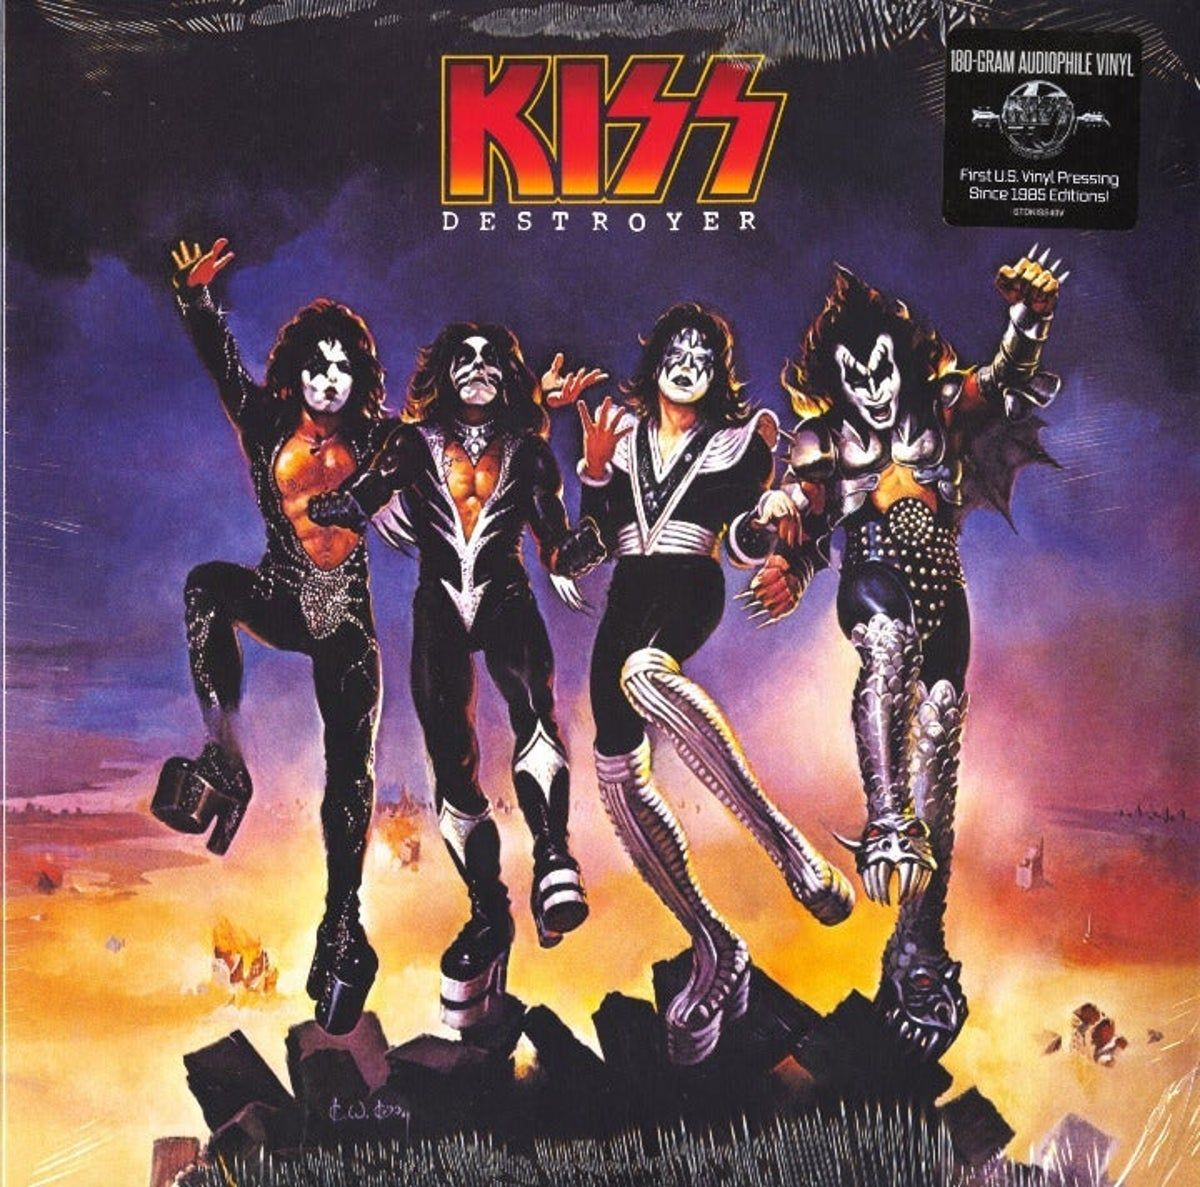 Kiss Destroyer 180g Vinyl Record New On Mercari In 2020 Kiss Album Covers Iconic Album Covers Rock Album Covers